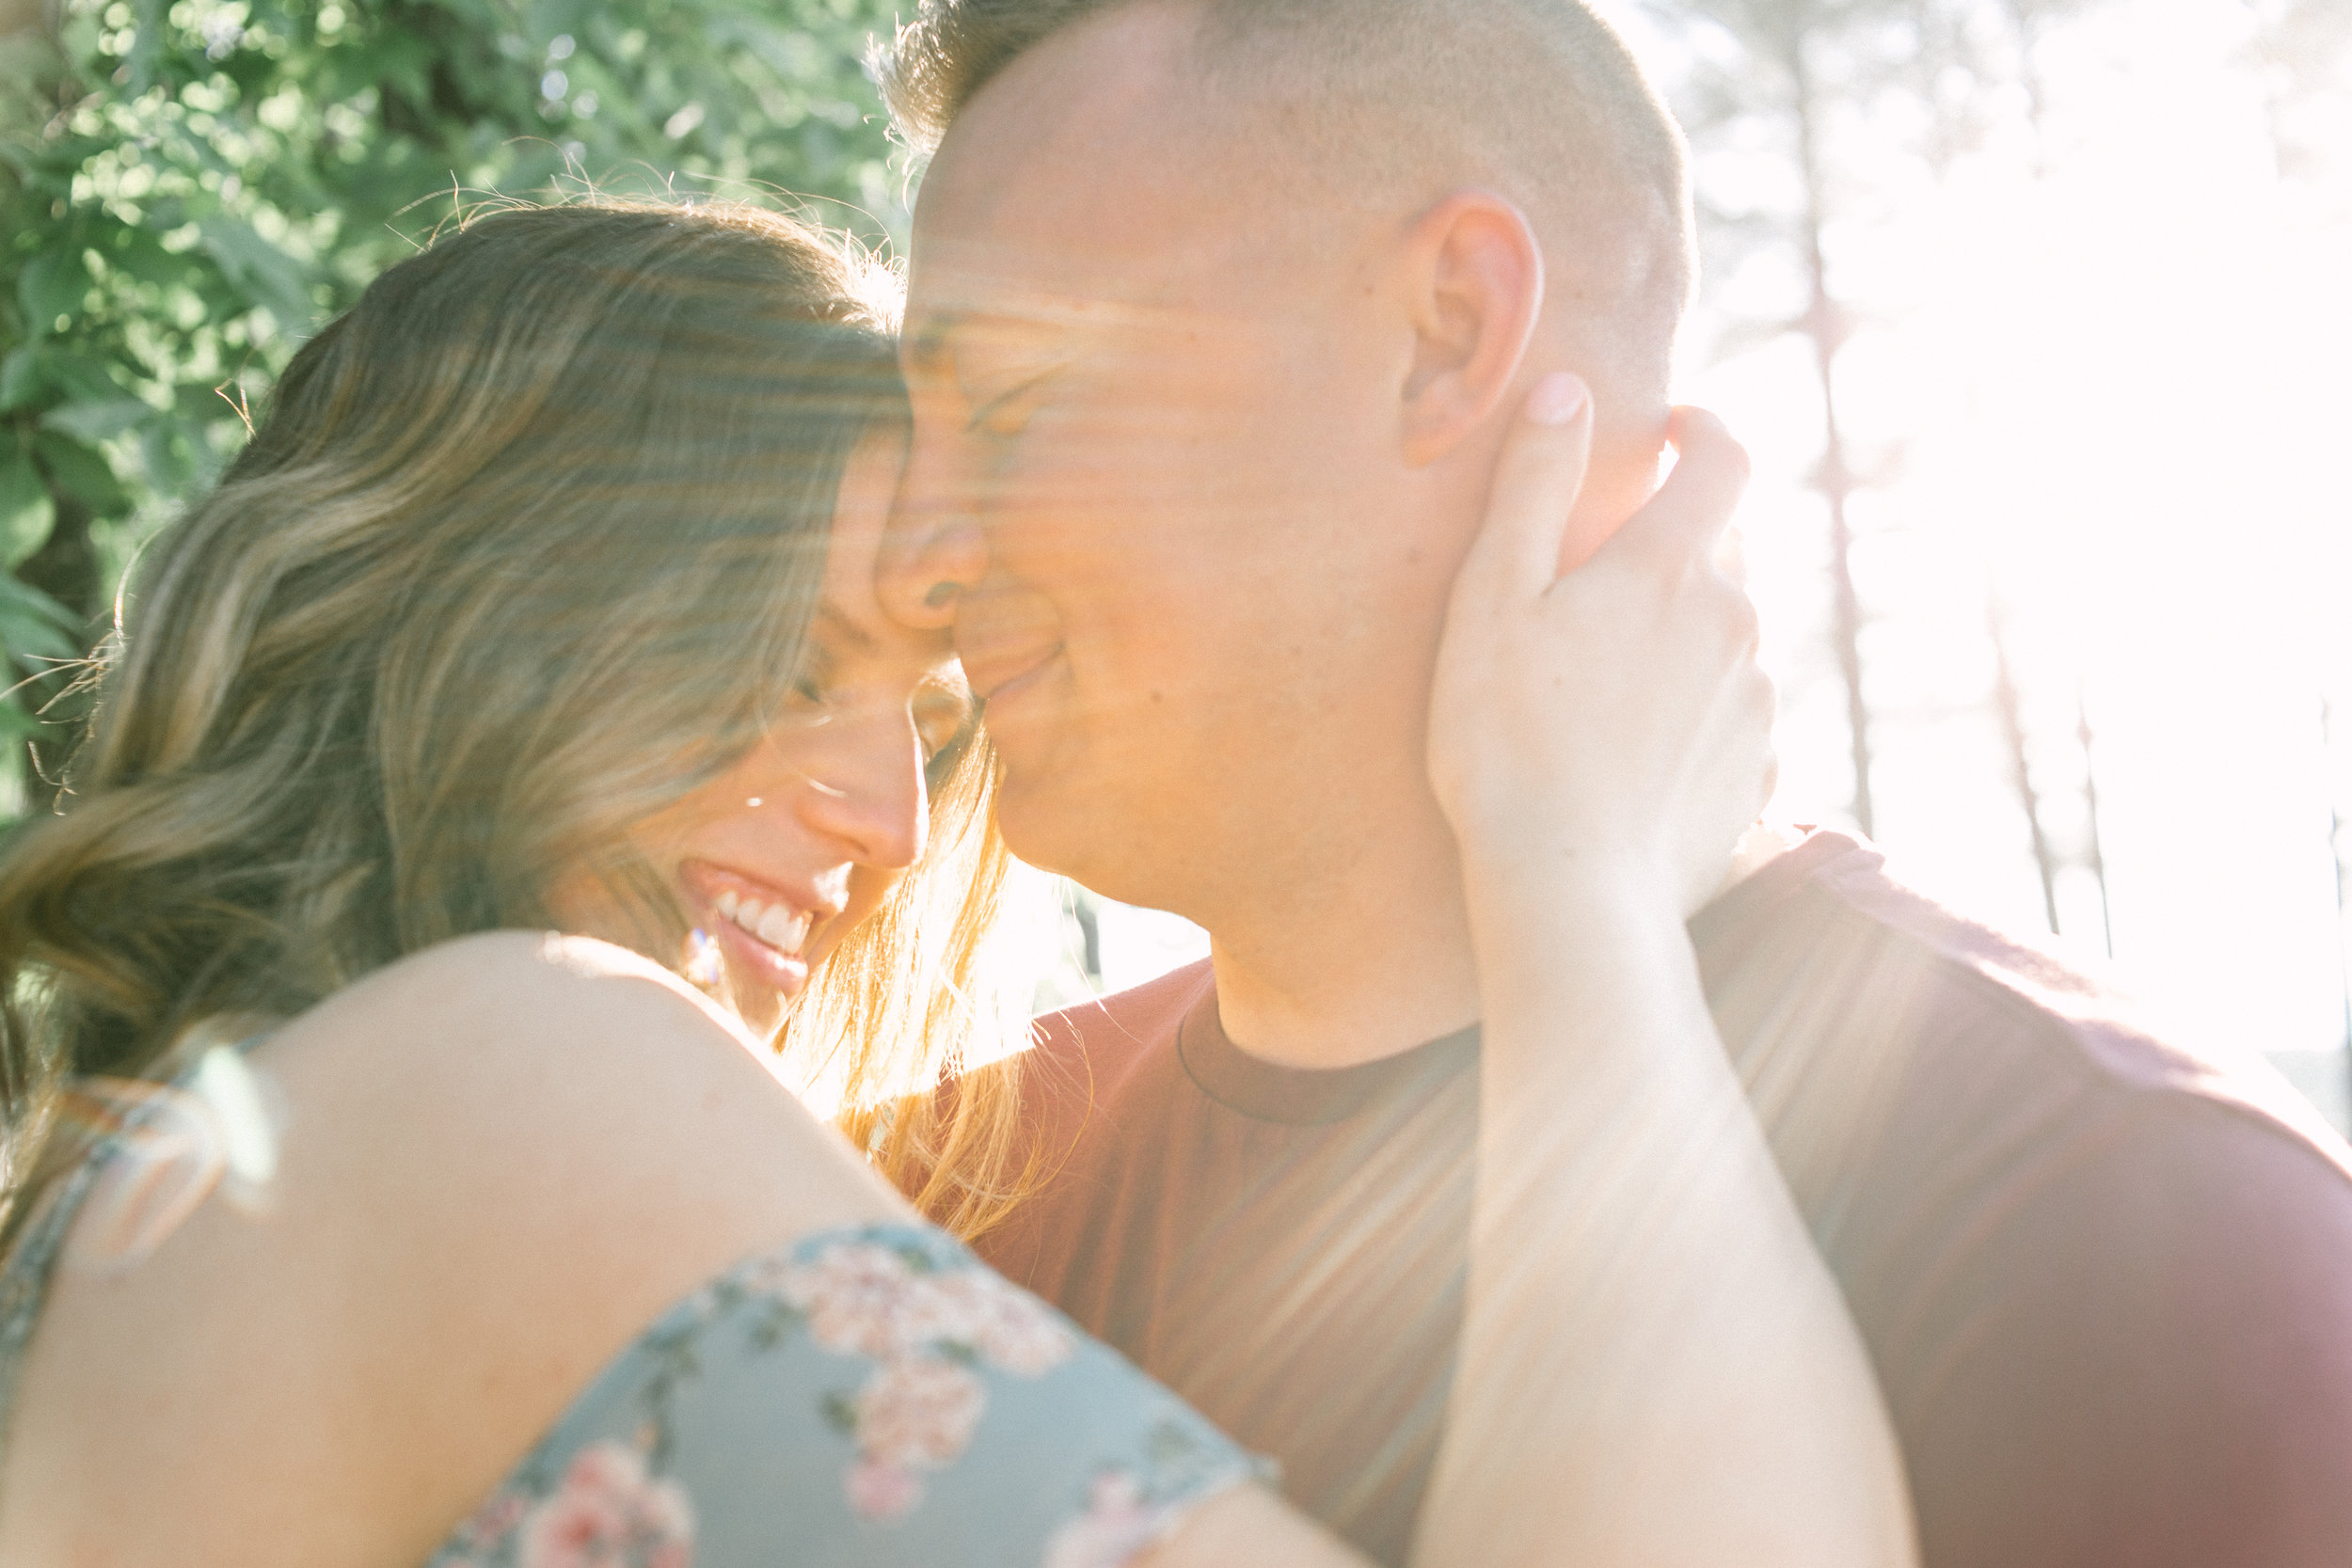 Chelsea & Ben Engagement - Sierra Vista - Amative Creative - 149.jpg